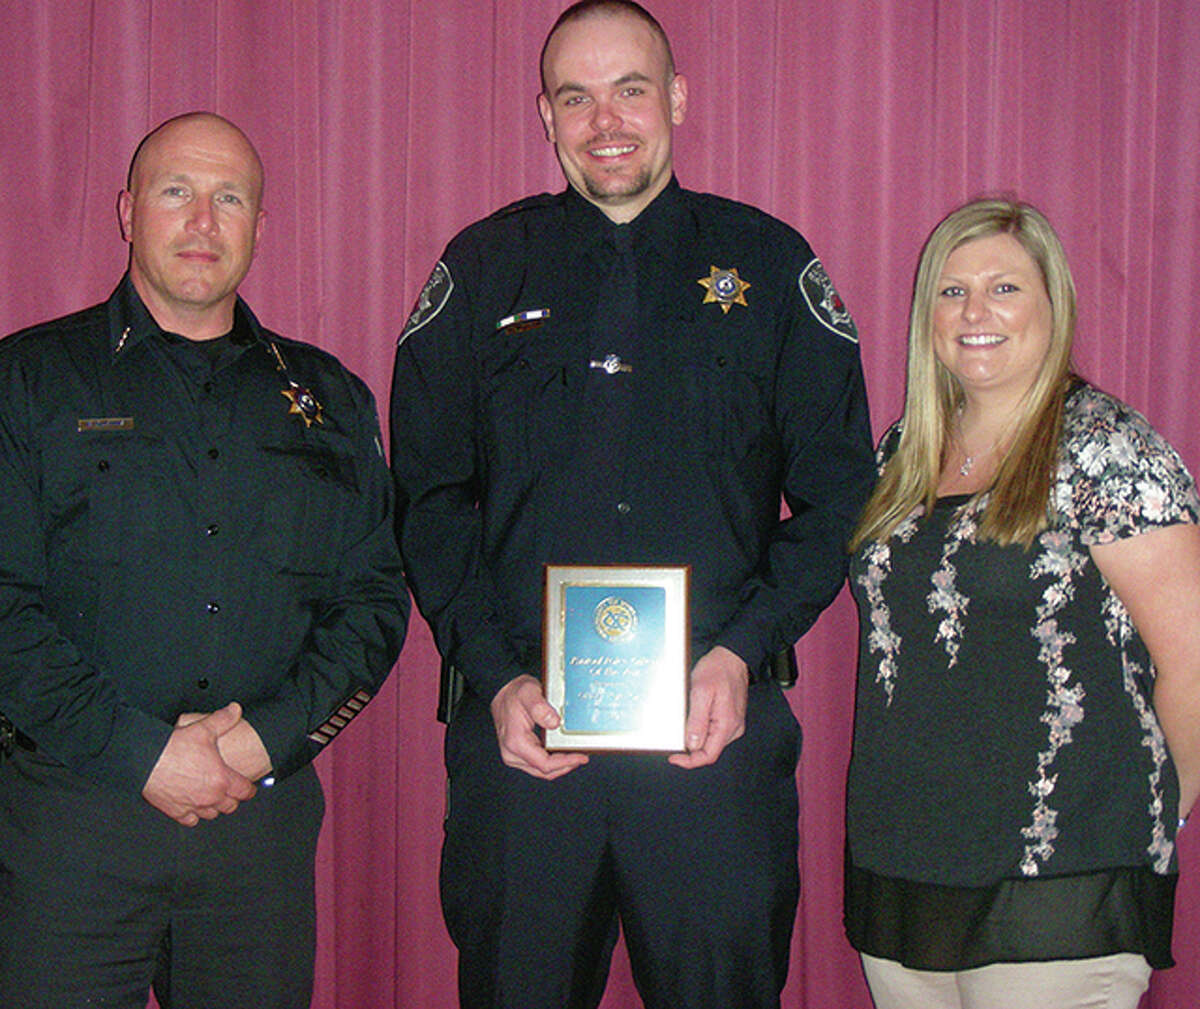 Dave Hinton   Rantoul Press Kevin Gregg (center), who was named Rantoul Police Officer of the Year at last week's Rantoul Exchange Club, accepts the award with Police Chief Erman Blevins and Gregg's fiancee, Emily Benting.